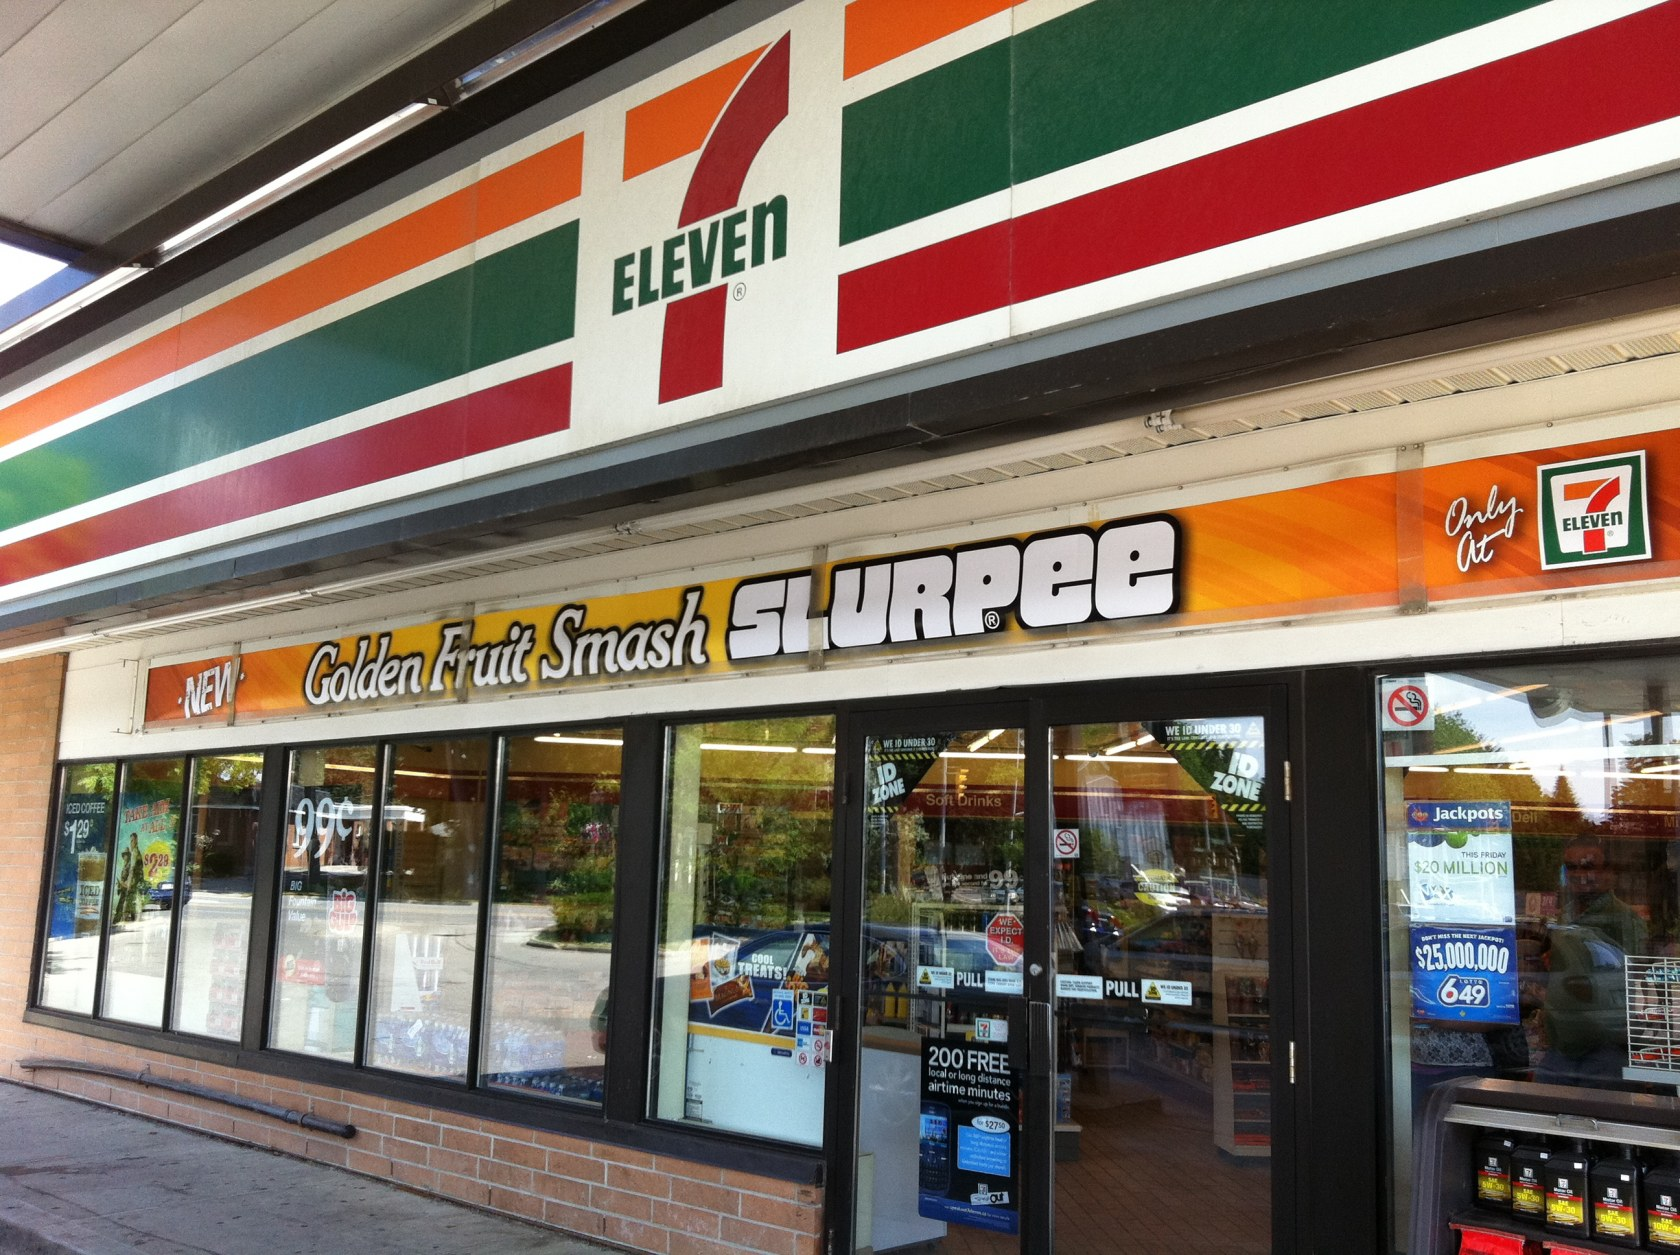 7-Eleven is testing a 'scan and go' mobile checkout system